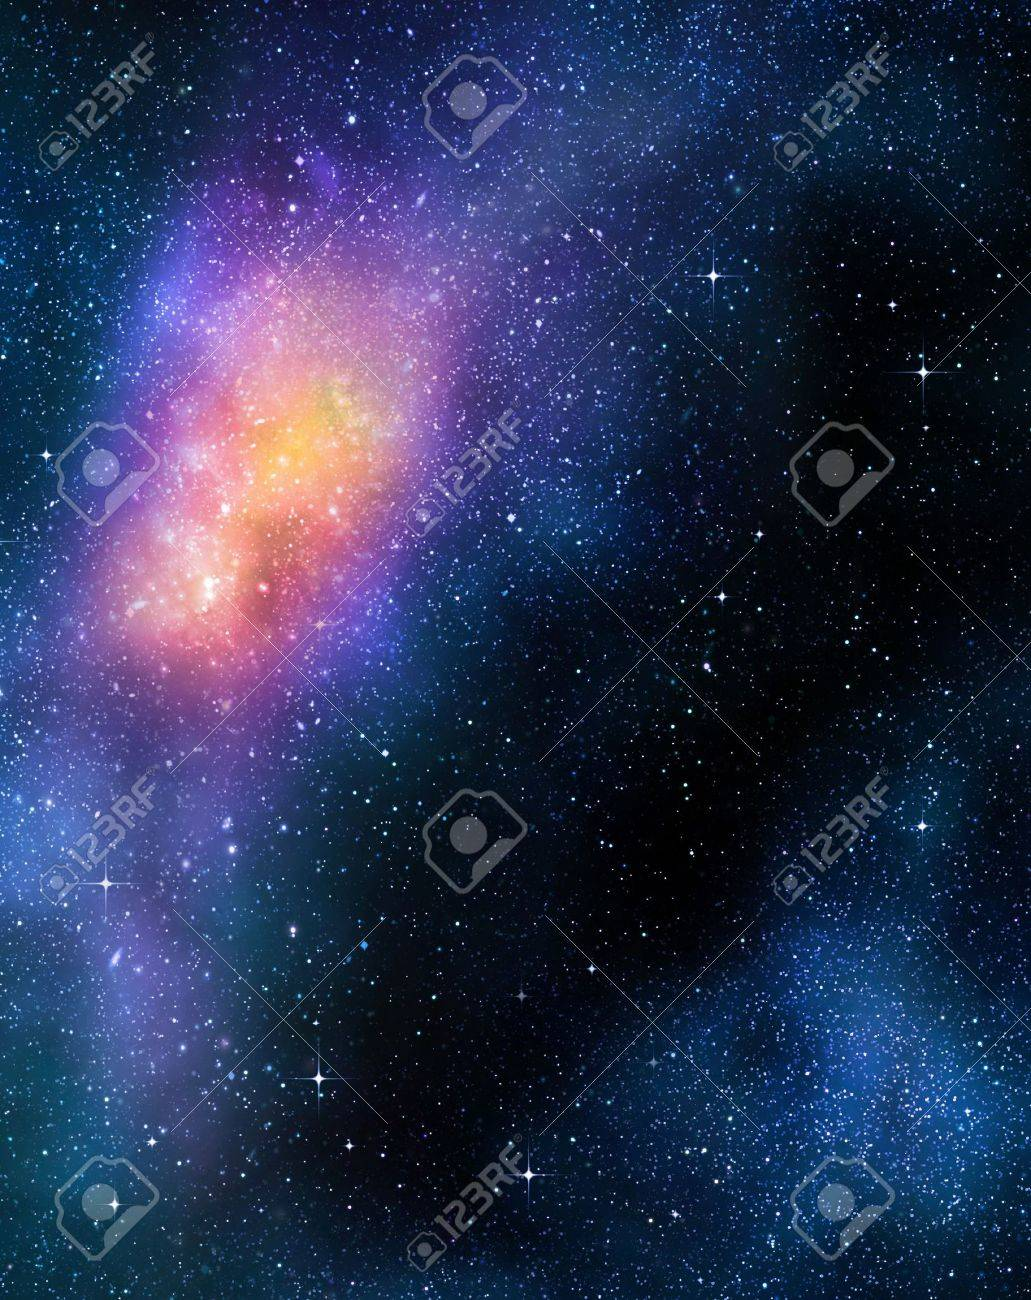 deep outer space background with stars and nebula Stock Photo - 8379509